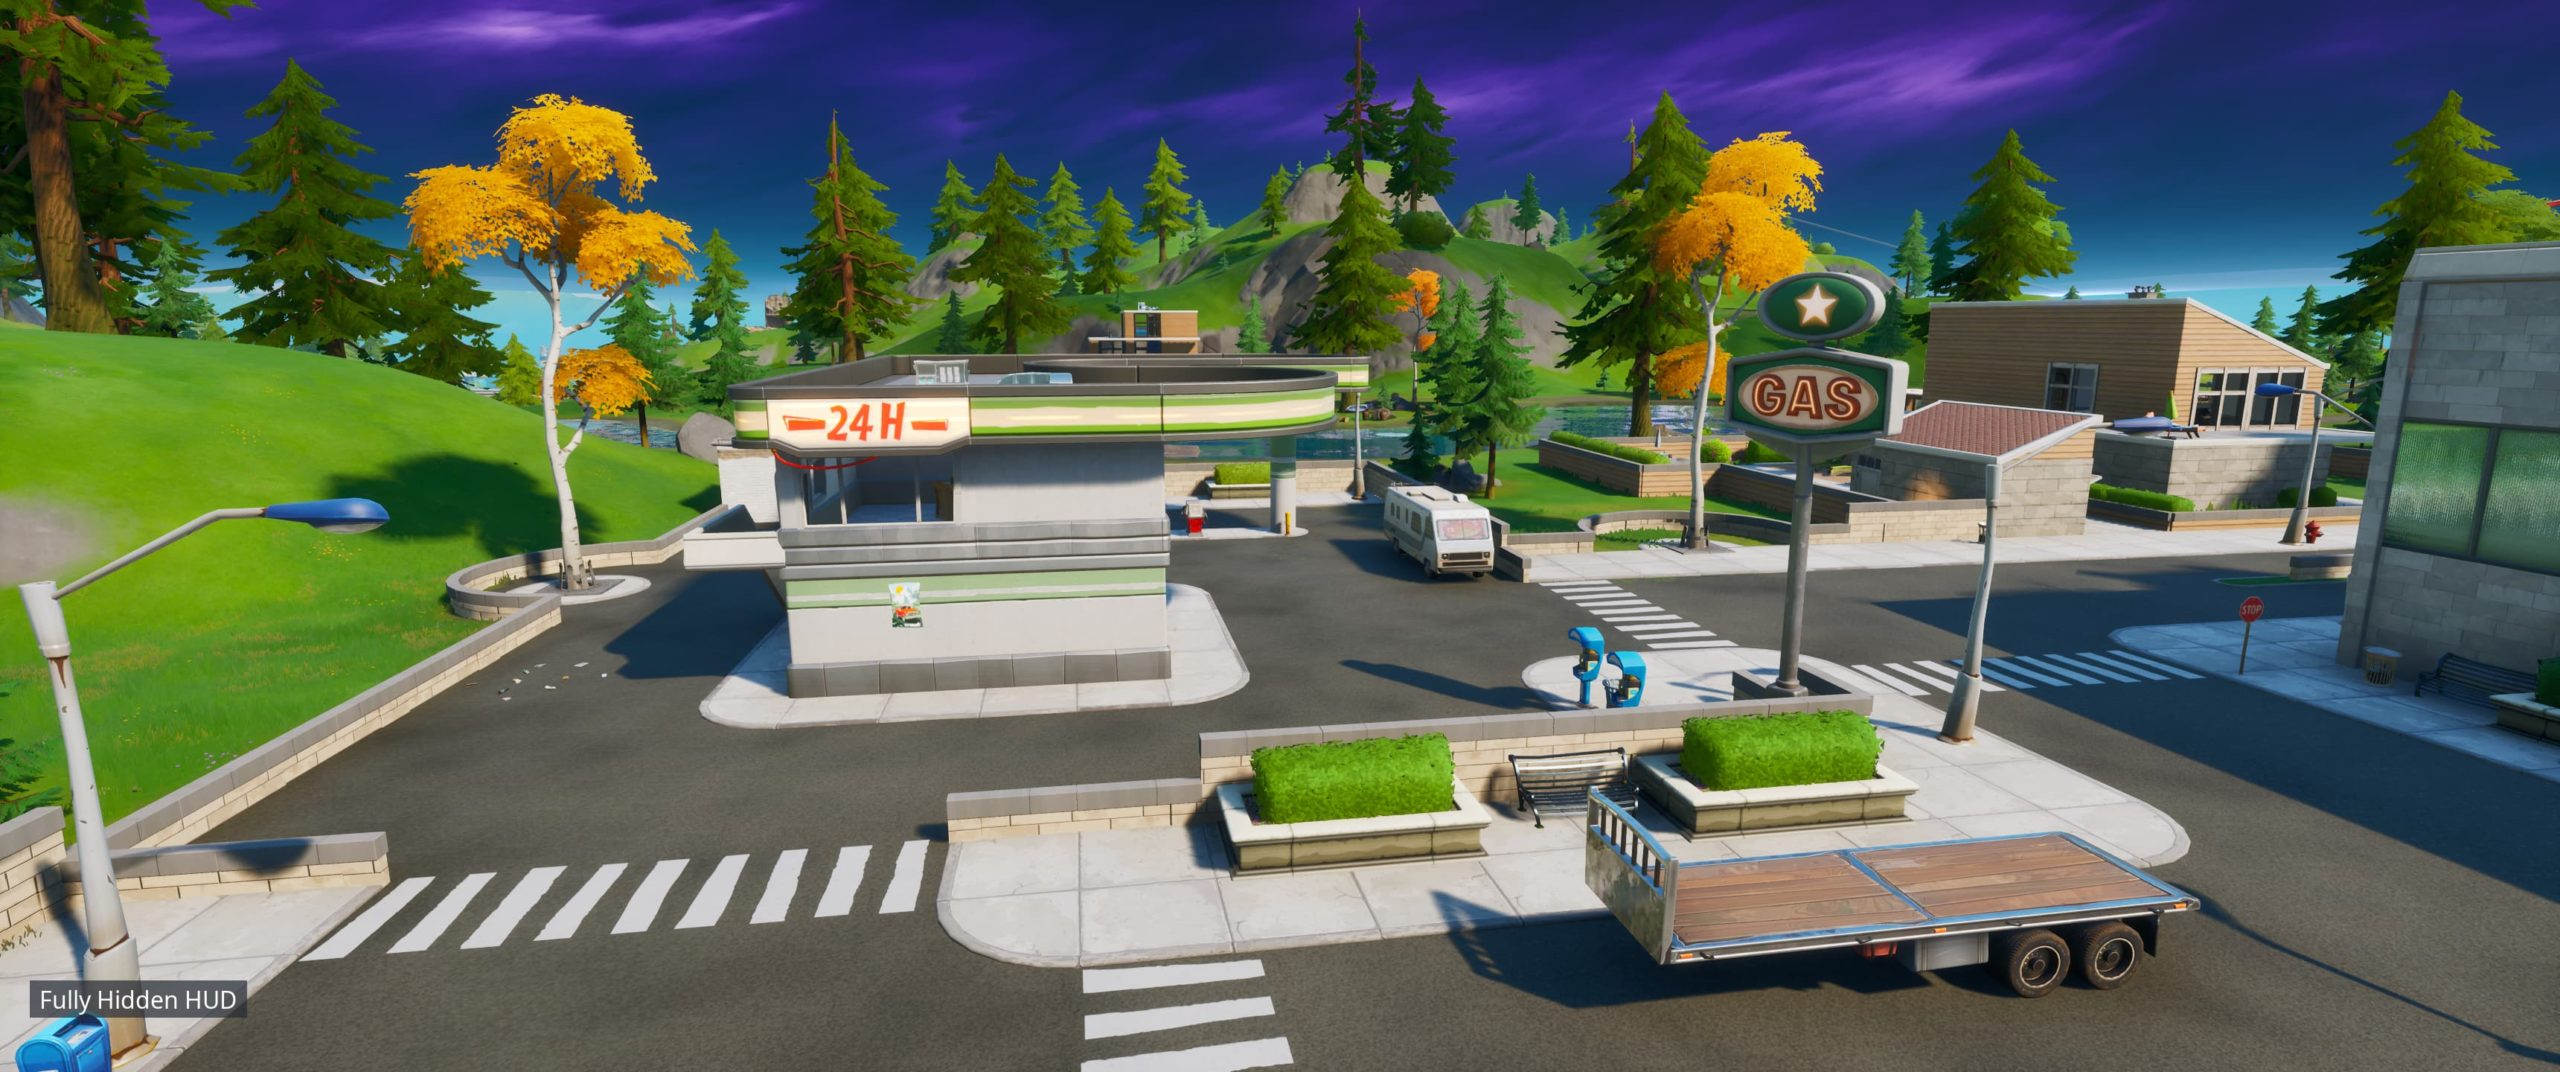 All Gas Station locations in Fortnite Chapter 2 Season 3 ...